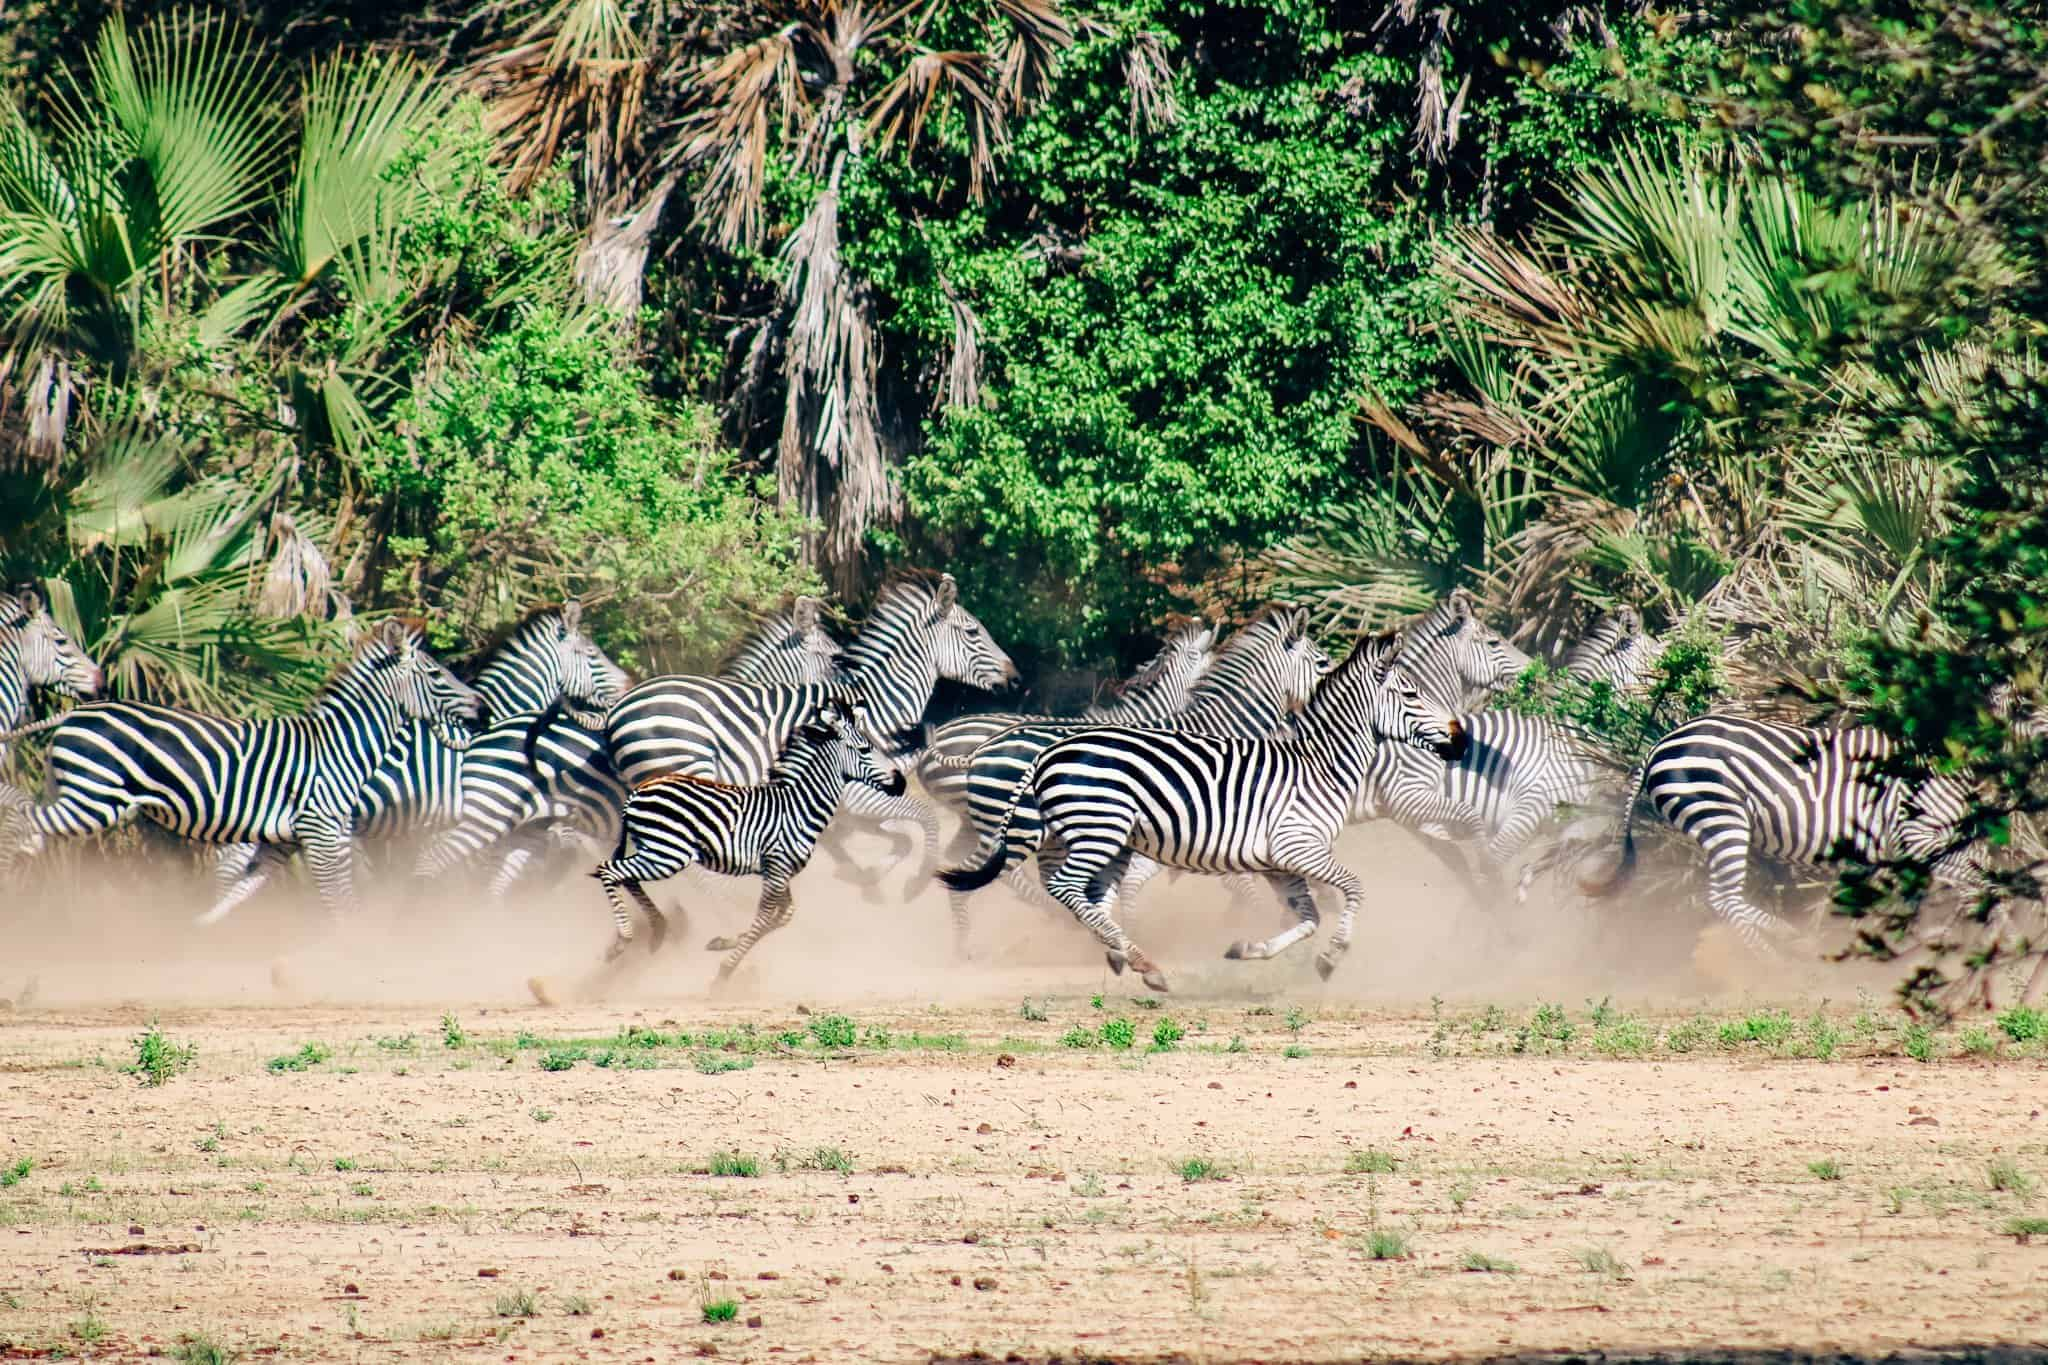 Herd of Zebras on African Safari Drive in the Selous Game Reserve